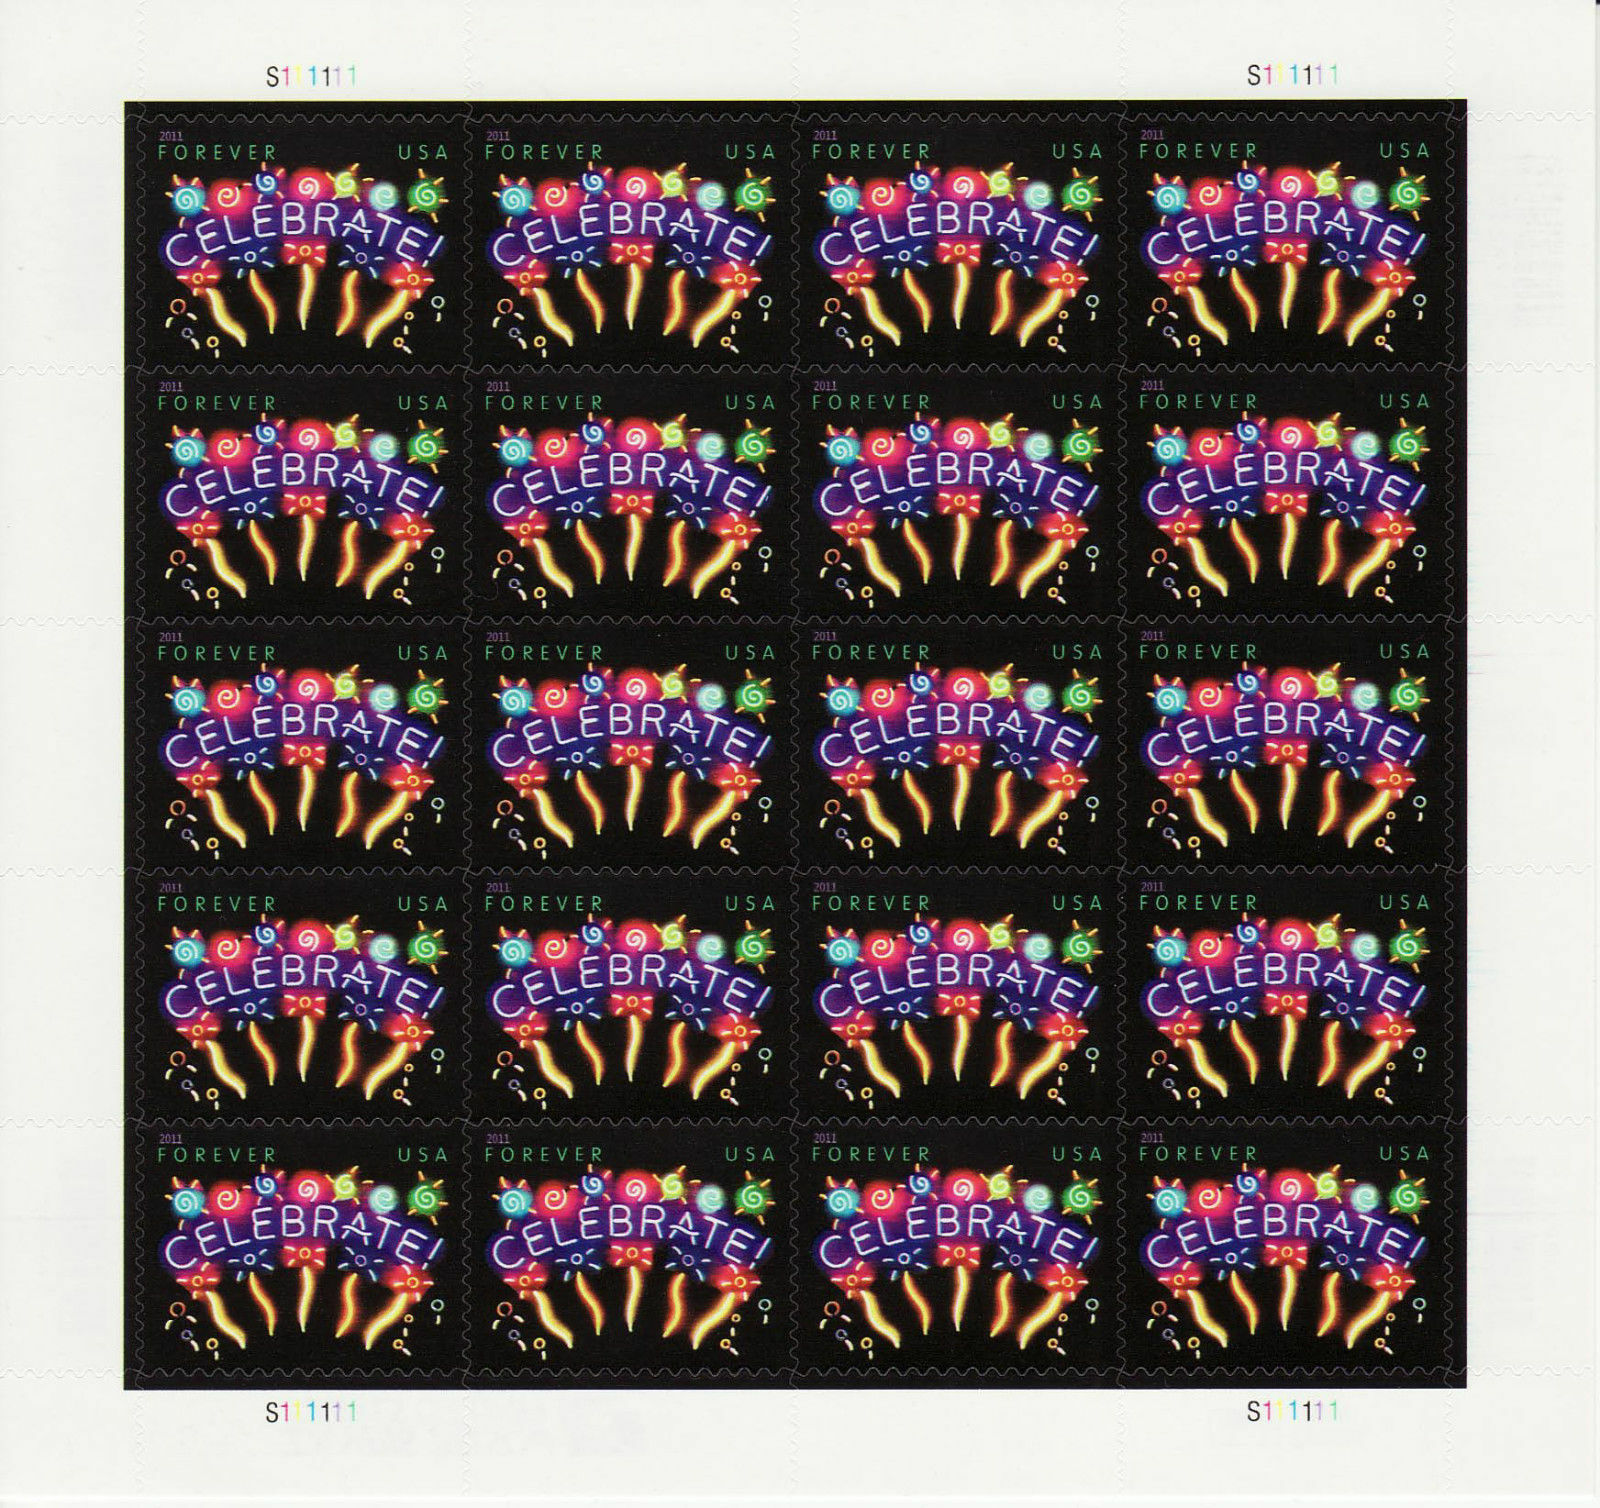 2011 44c Neon, Celebrate, Sheet of 20 Scott 4502 Mint F